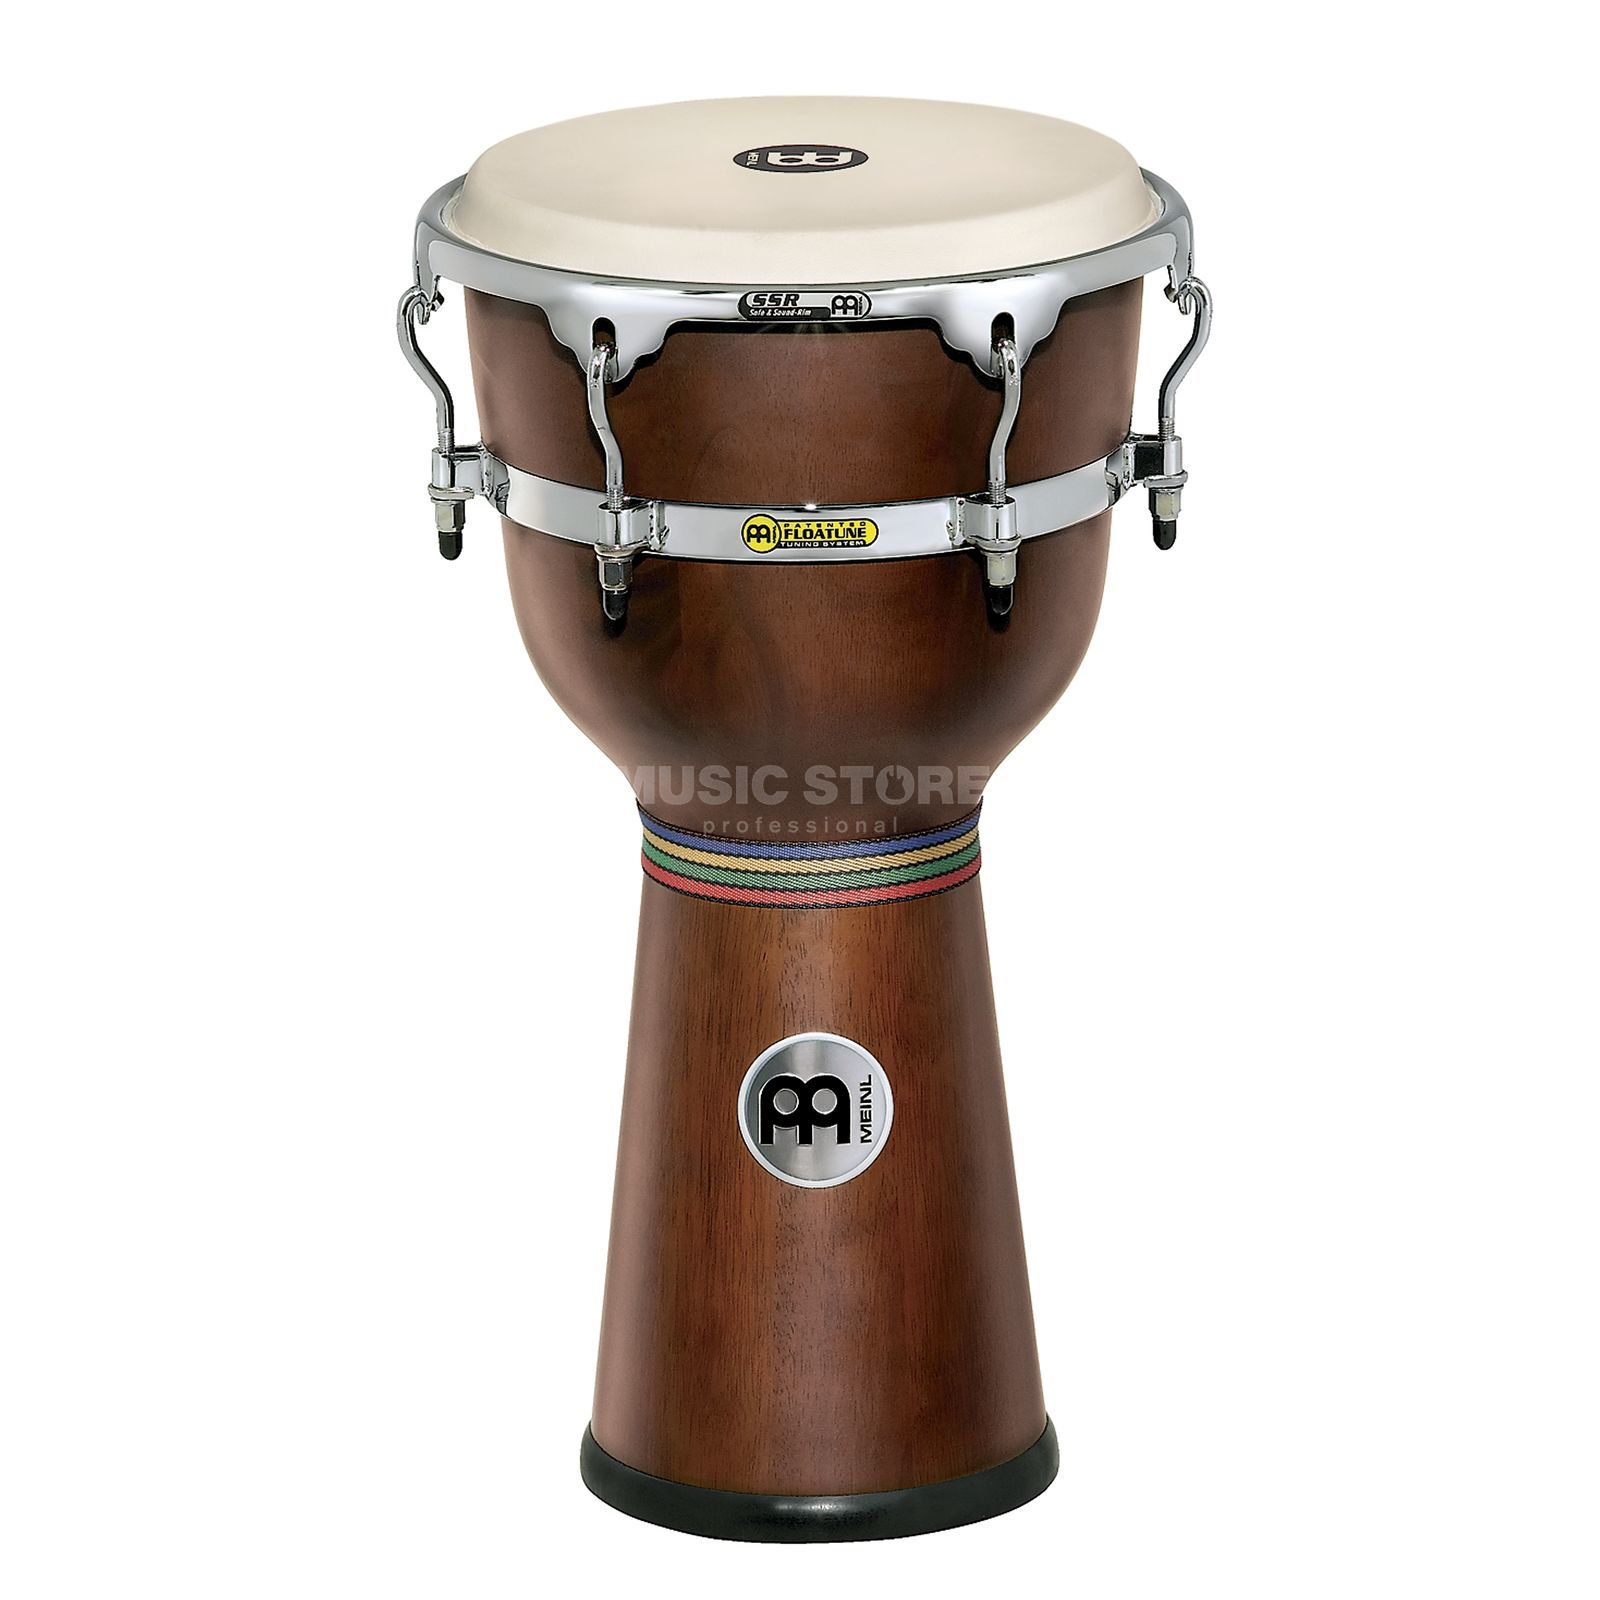 "Meinl Floatune Djembe 12"" DJW3-AB-M, African Brown Product Image"